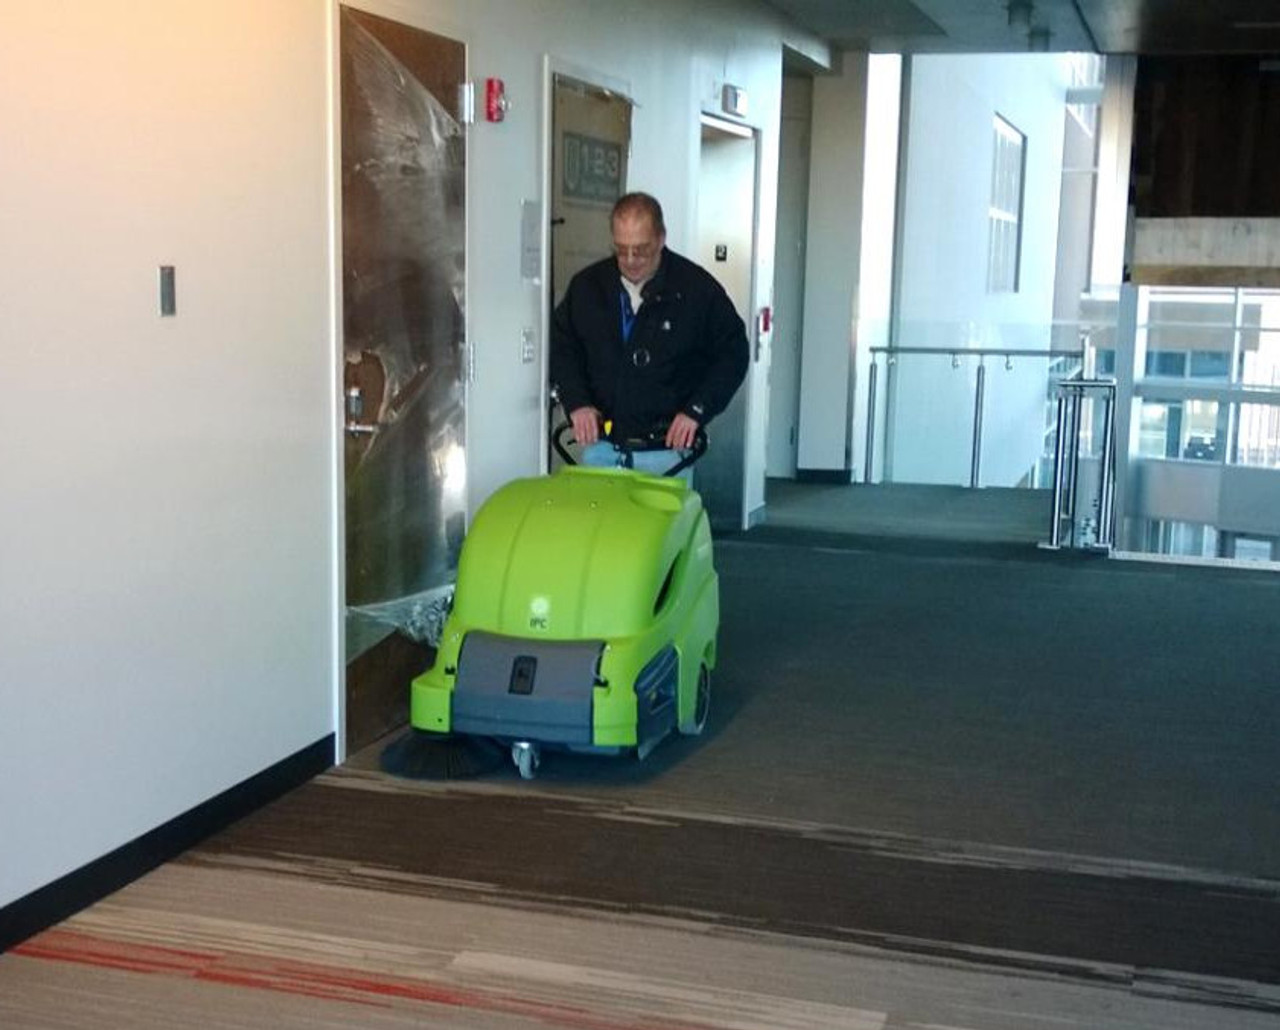 Leave no dirt behind in doorways with the 512 sweeper!